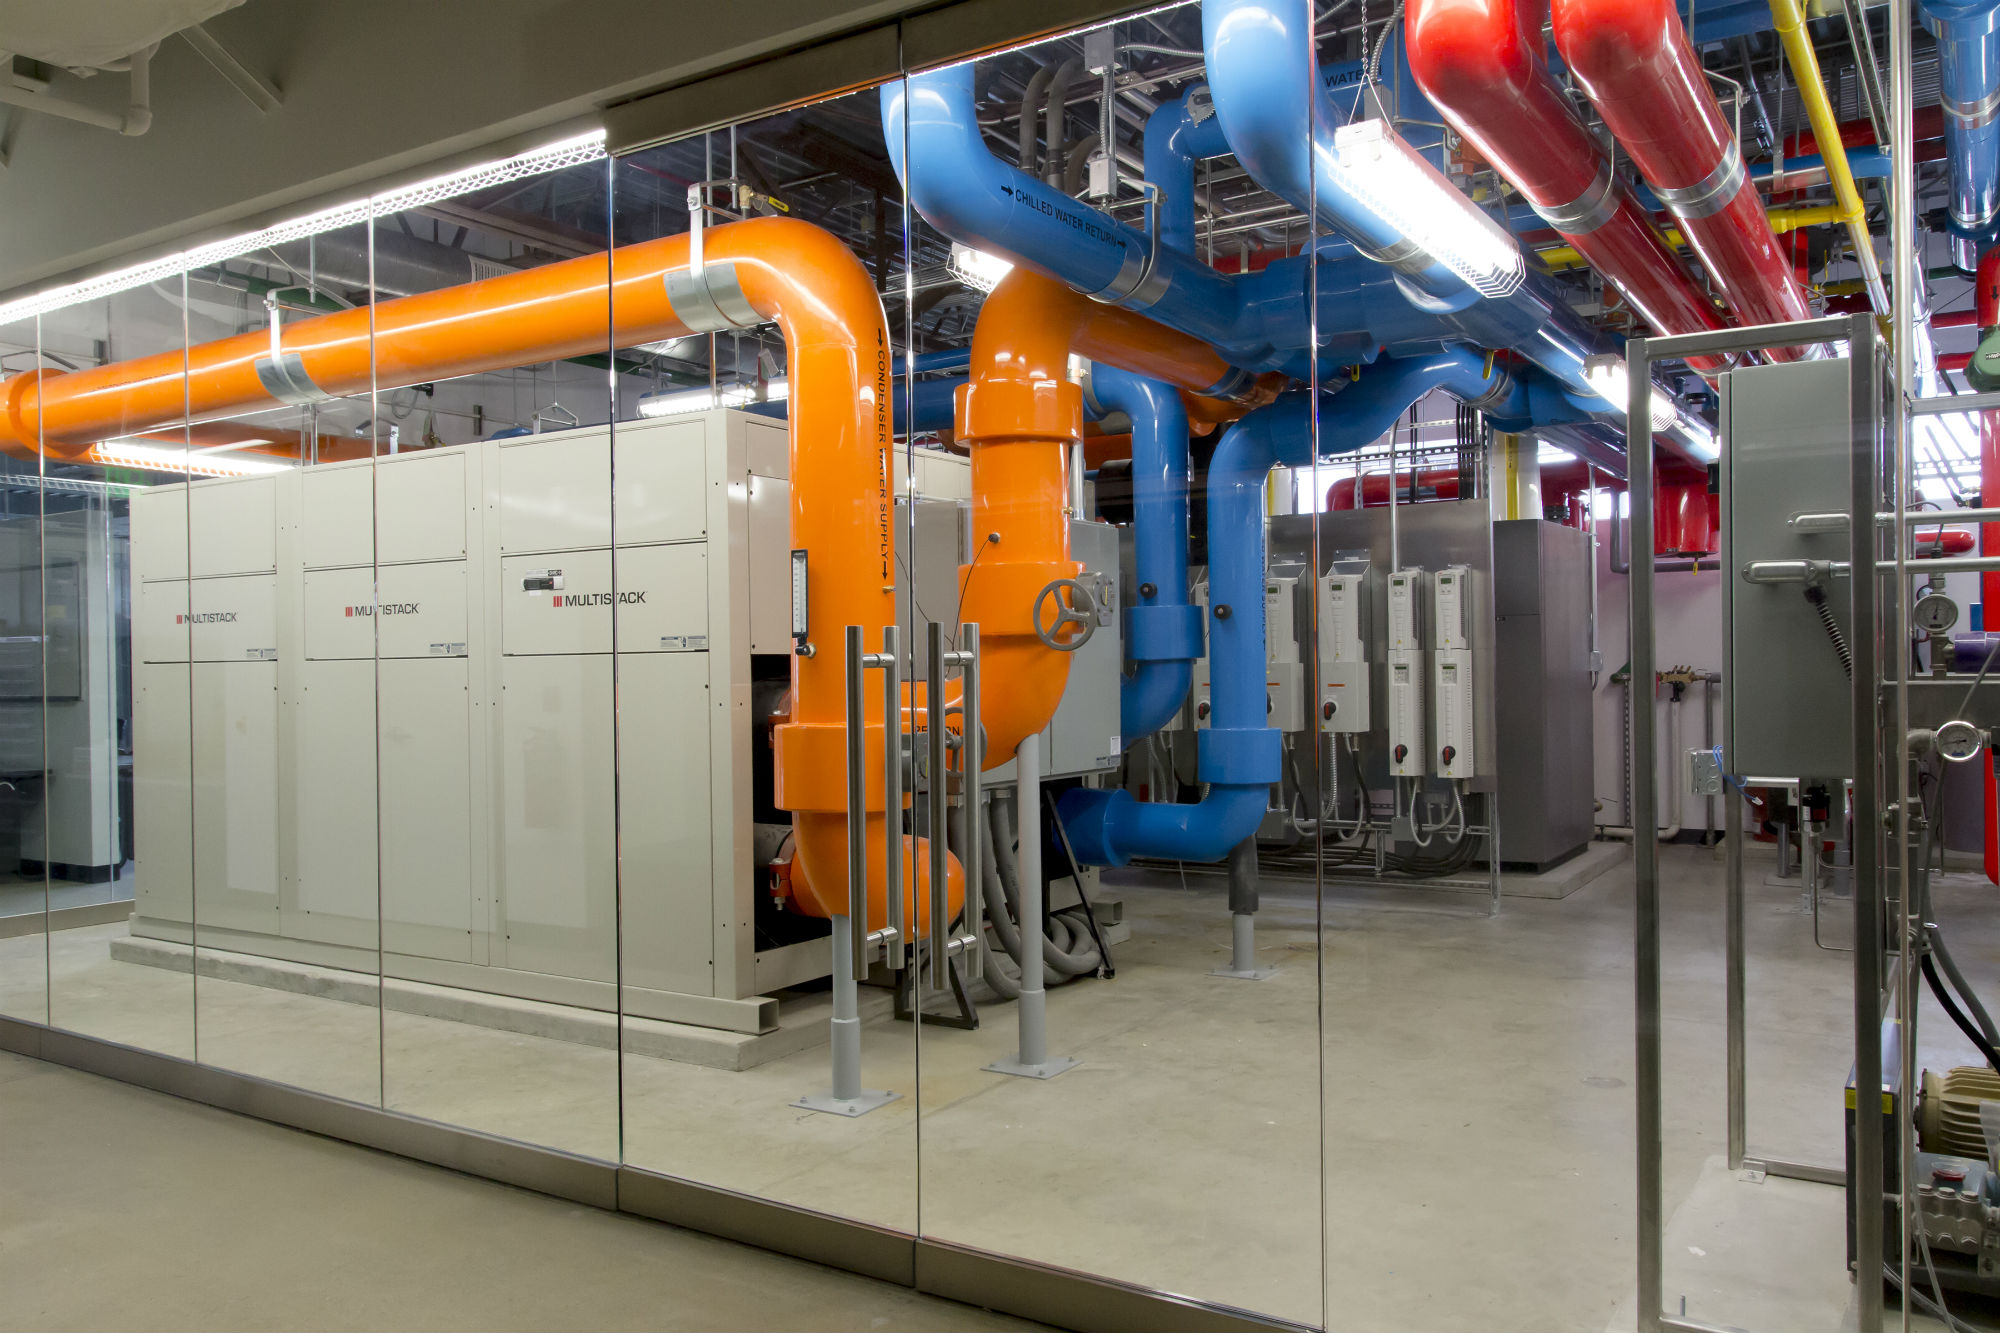 Nearby Southern Ca Commercial Hvac Contractor